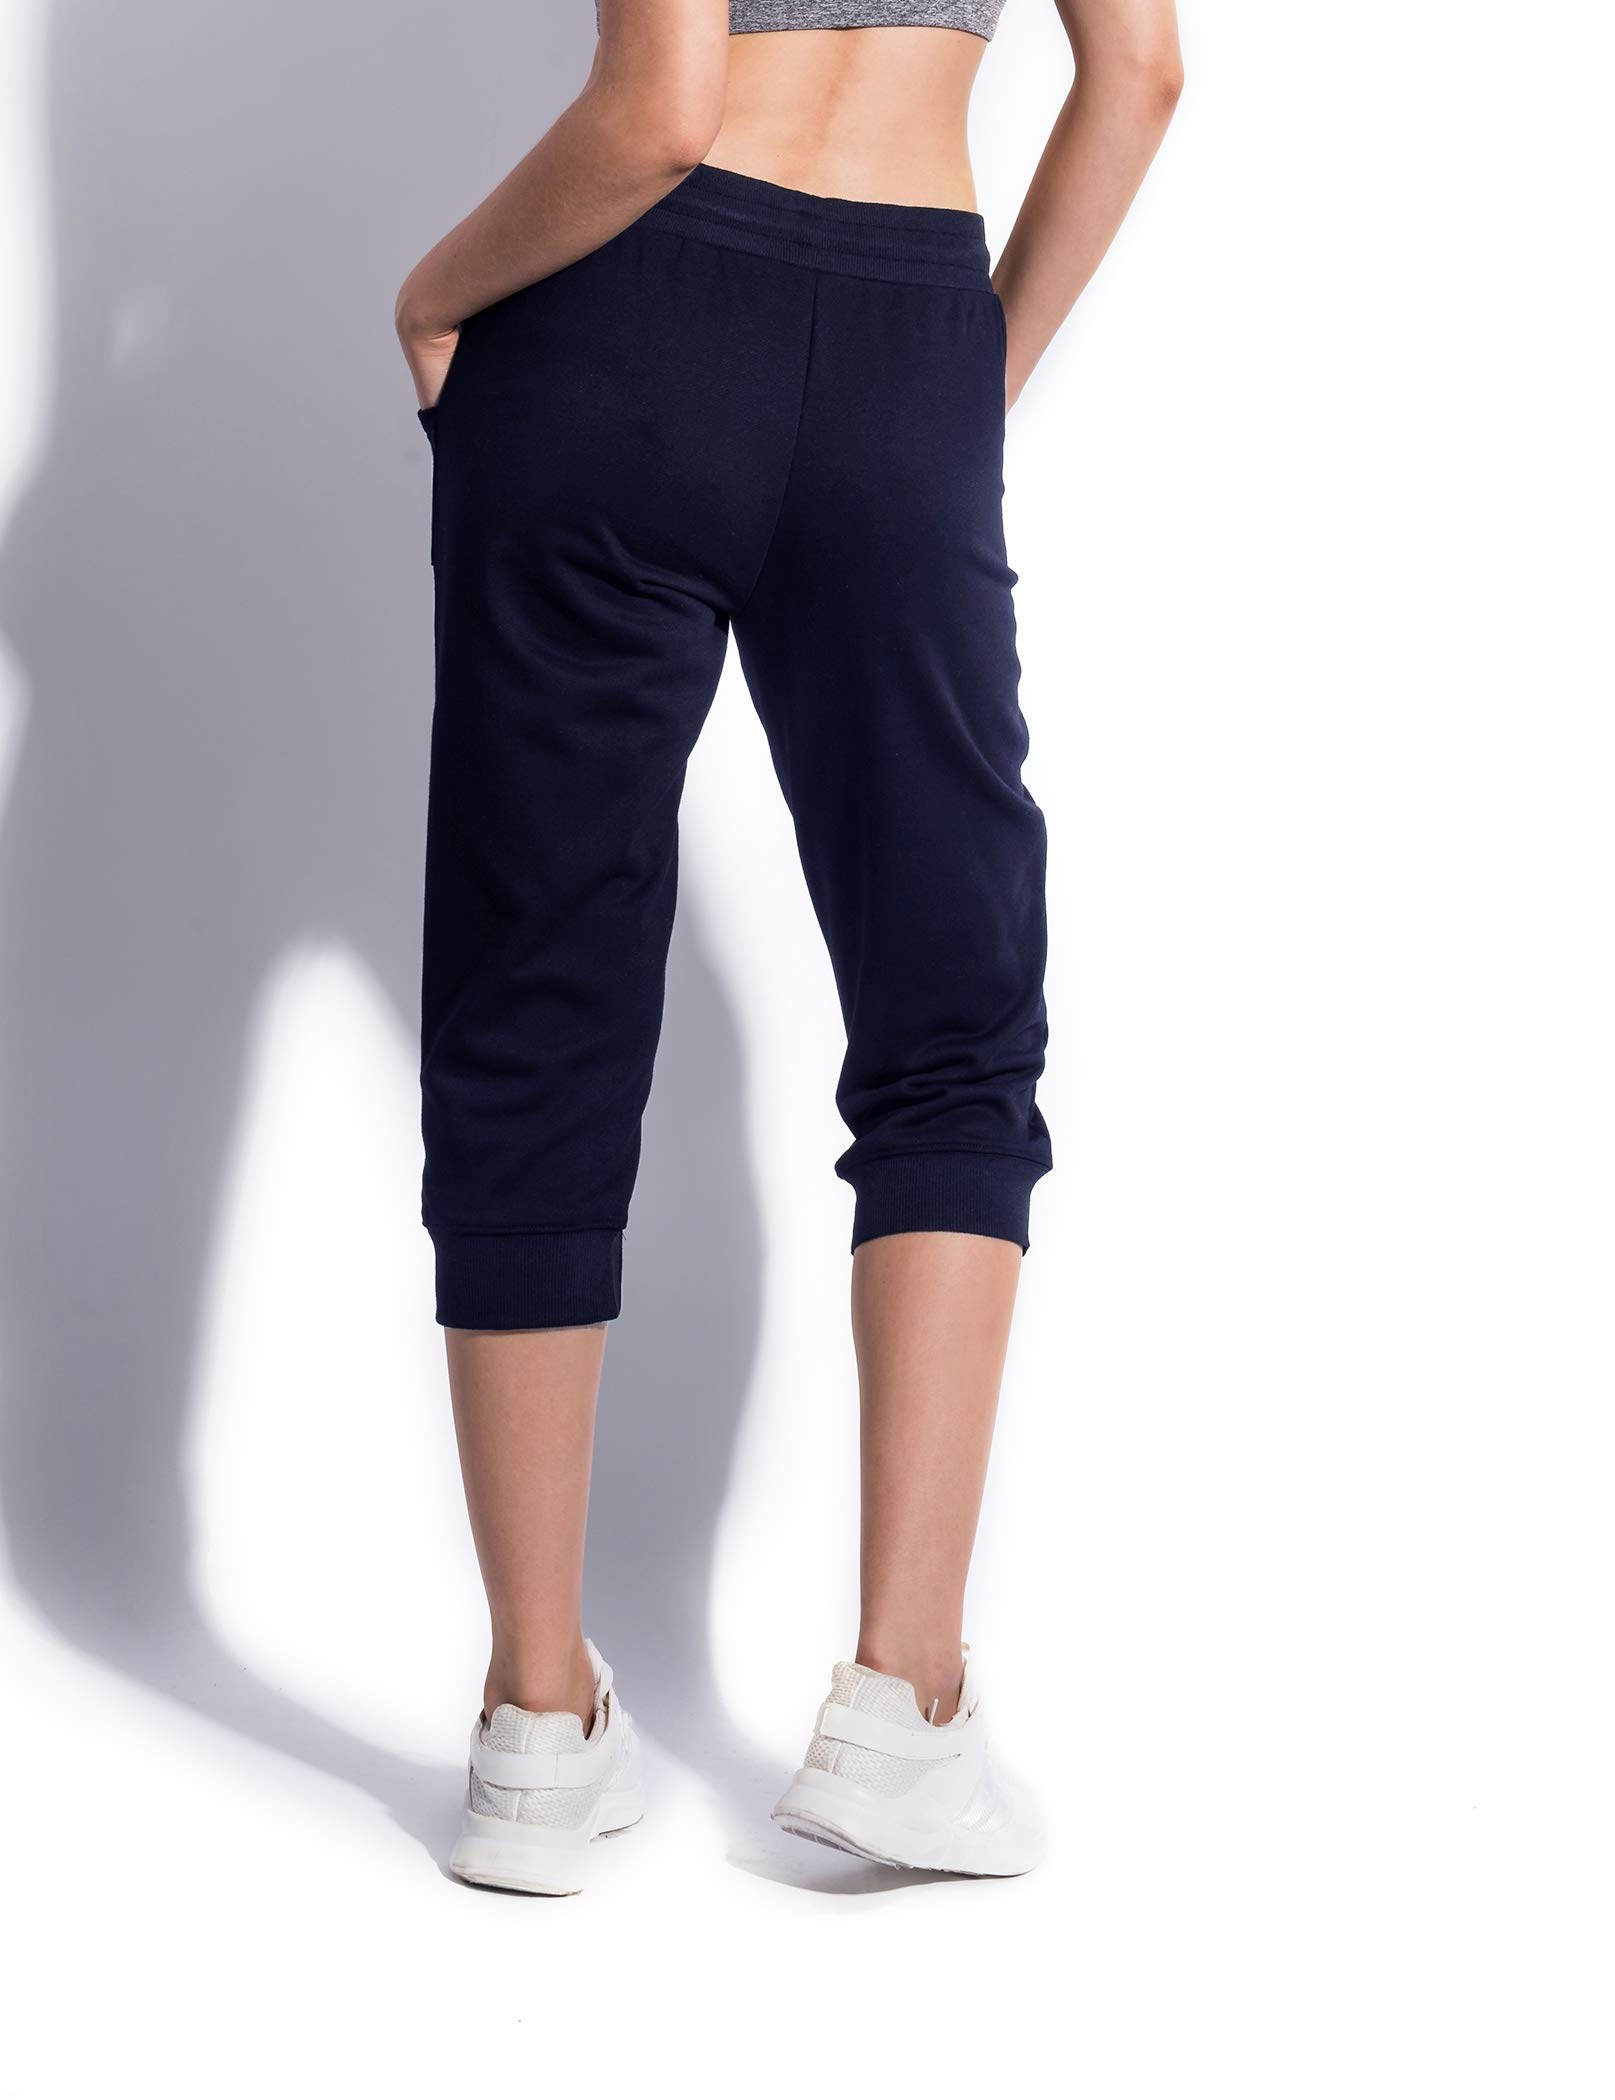 SPECIALMAGIC Women\'s Cotton Jersey Cropped Jogger Sweatpants with Drawstring and Pockets Navy S